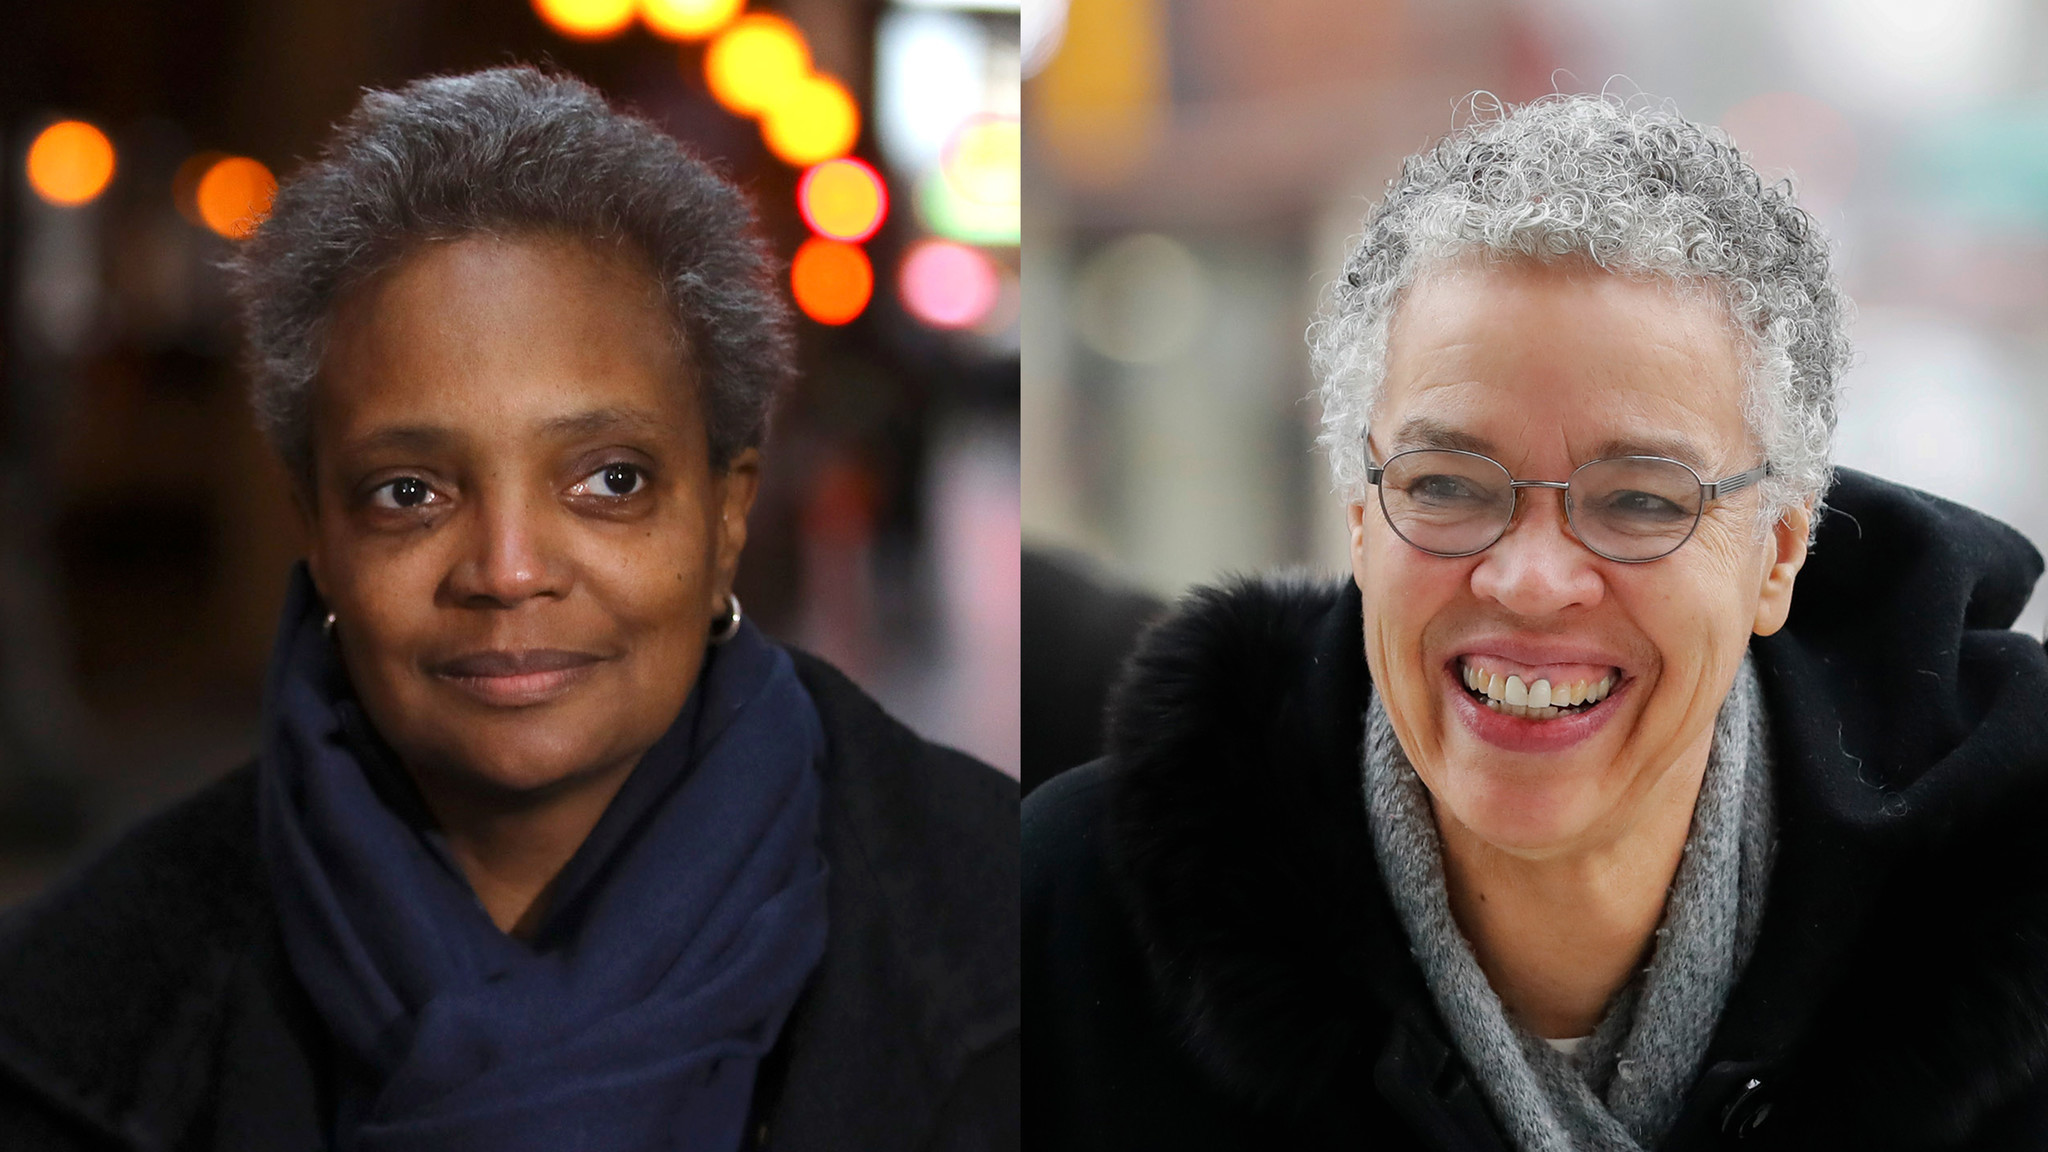 Chicago poised to elect first African-American female mayor after Lori Lightfoot, Toni Preckwinkle advance